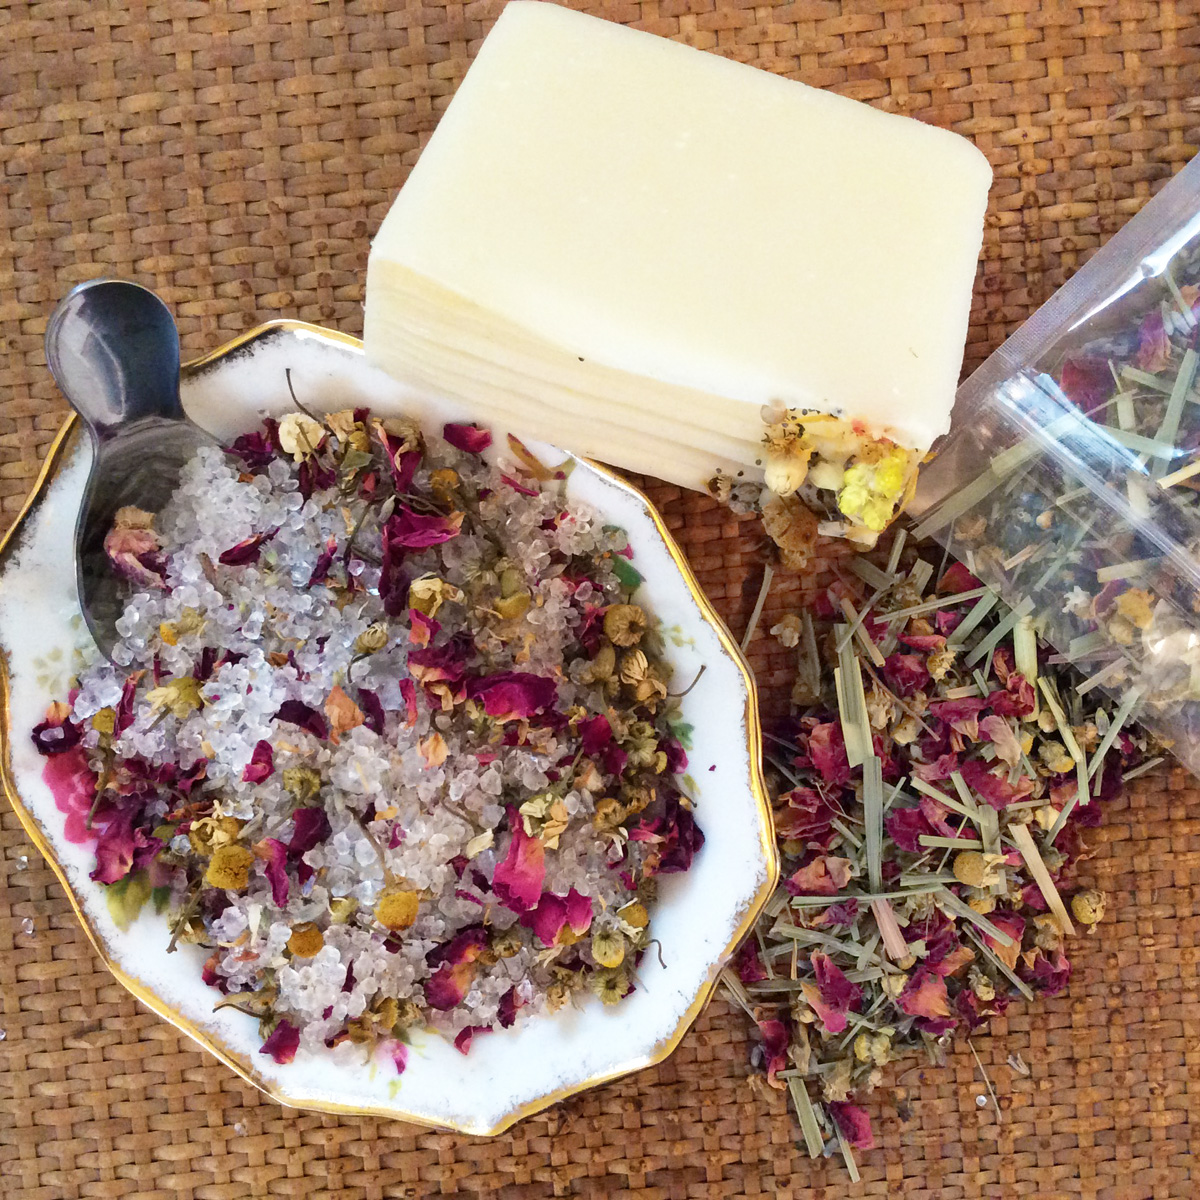 Overhead view of bath tea with rose petals, chamomile, lavender, and epsom salts in a dish with a silver scoop. A bar of soap rests next to it.